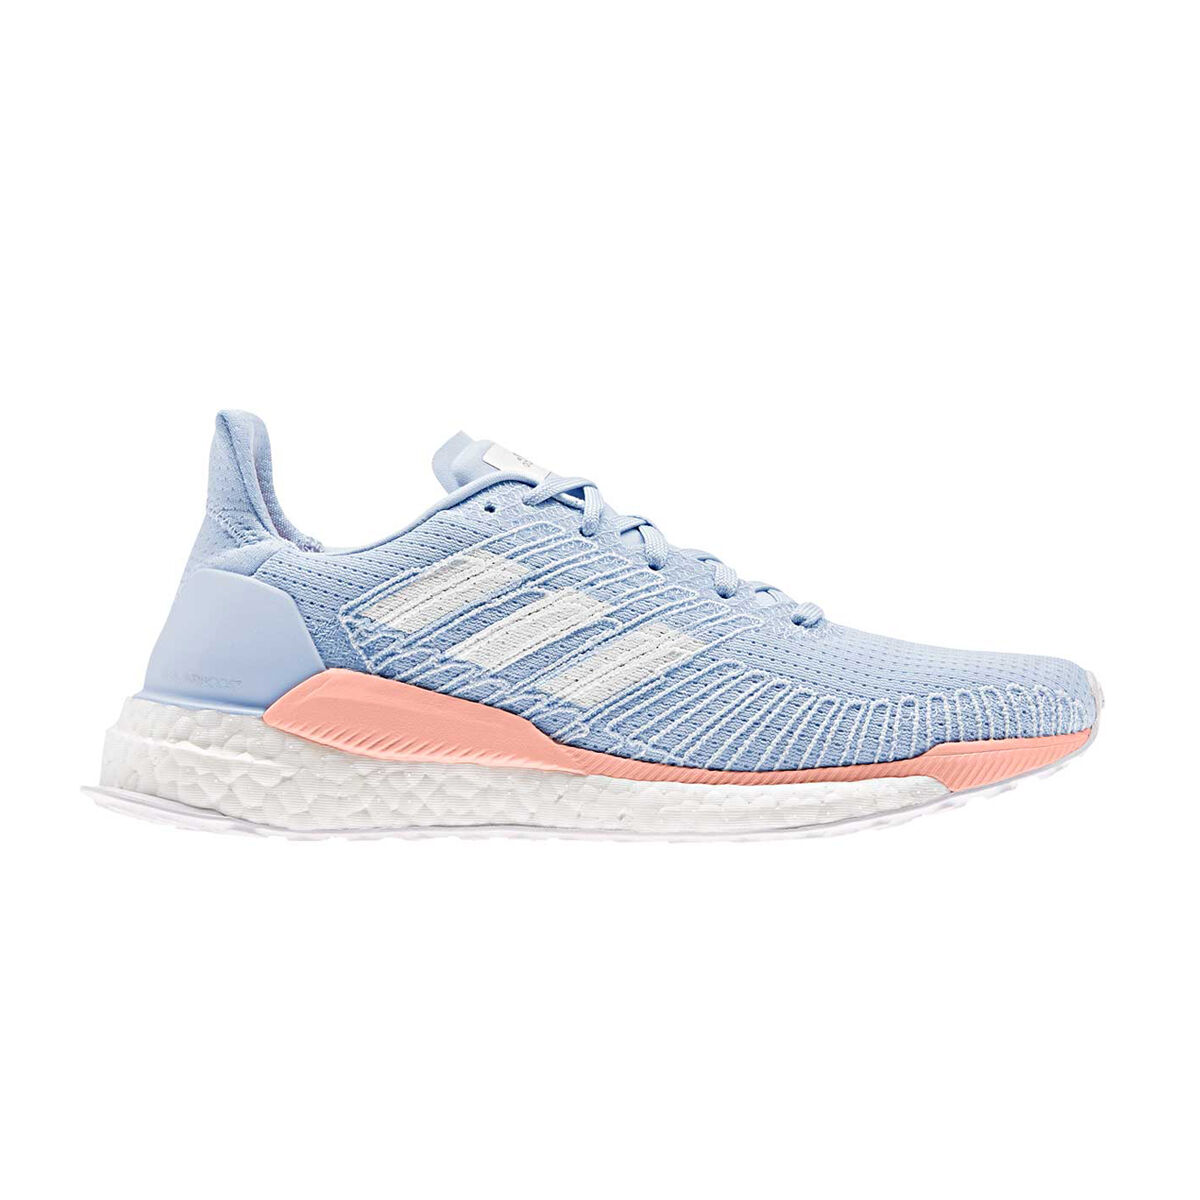 Promotions adidas Response Boost Women's Running Shoes Solar